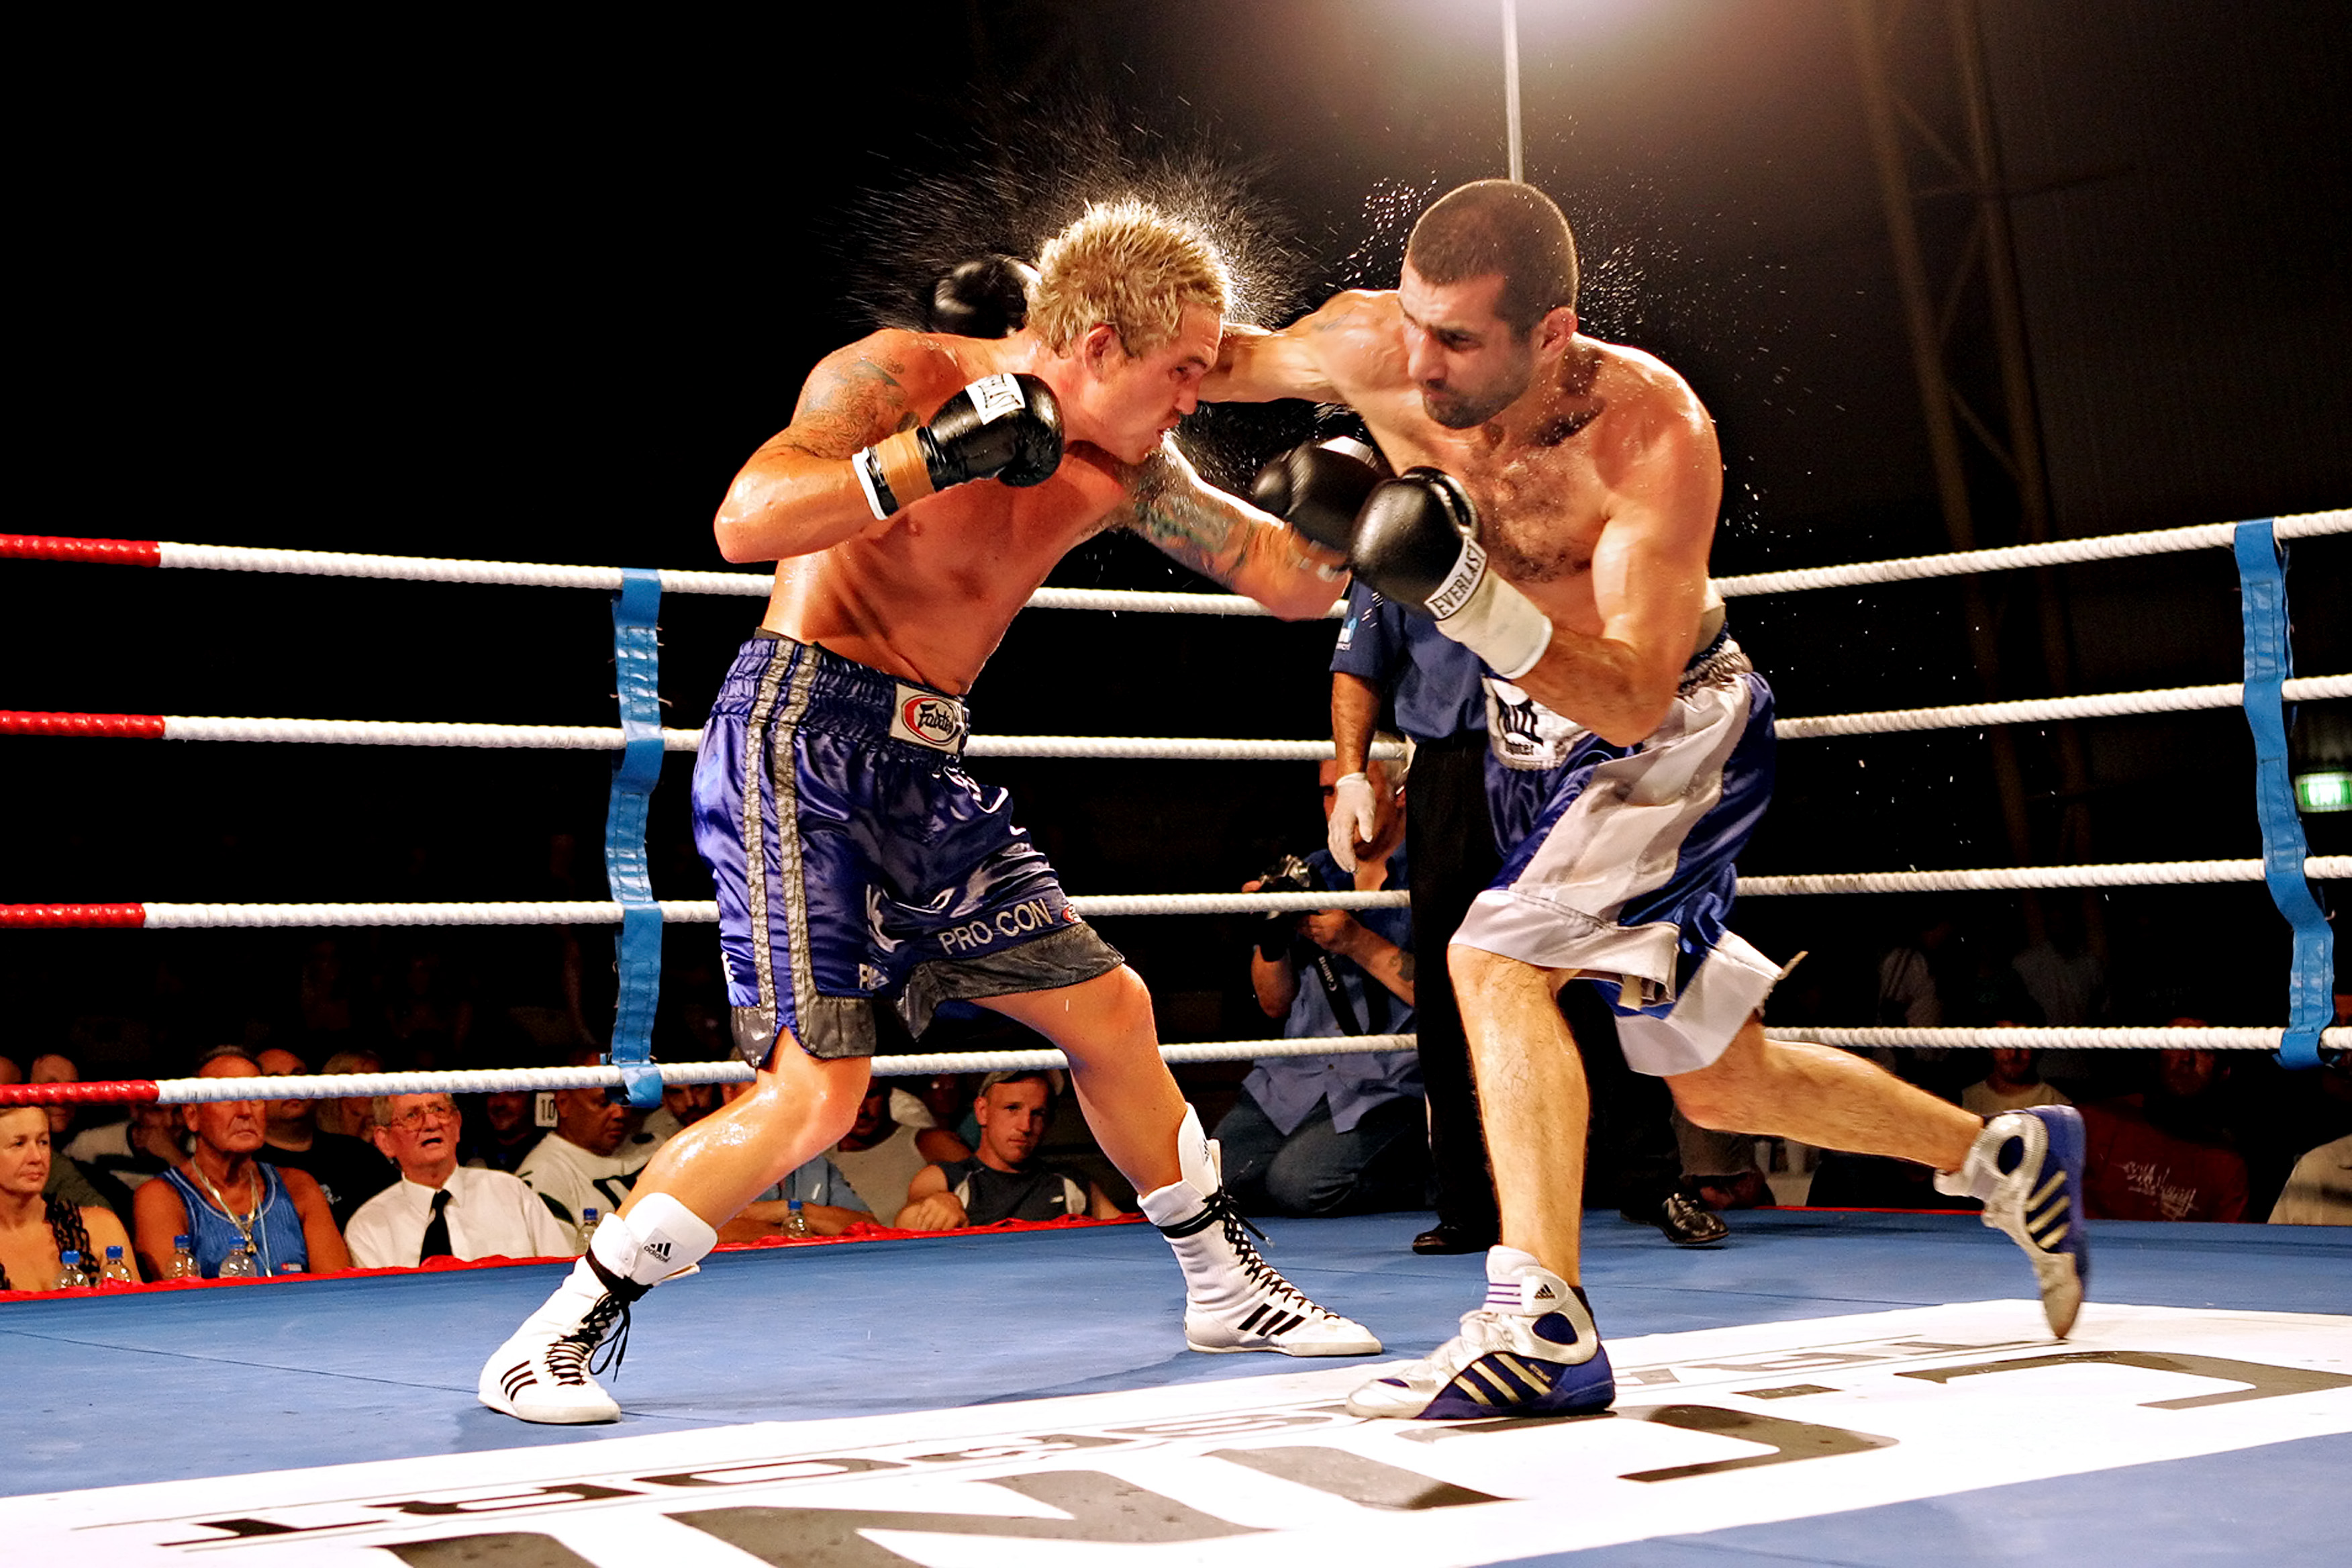 Medics demand ban on boxing in Australia after fighter dies